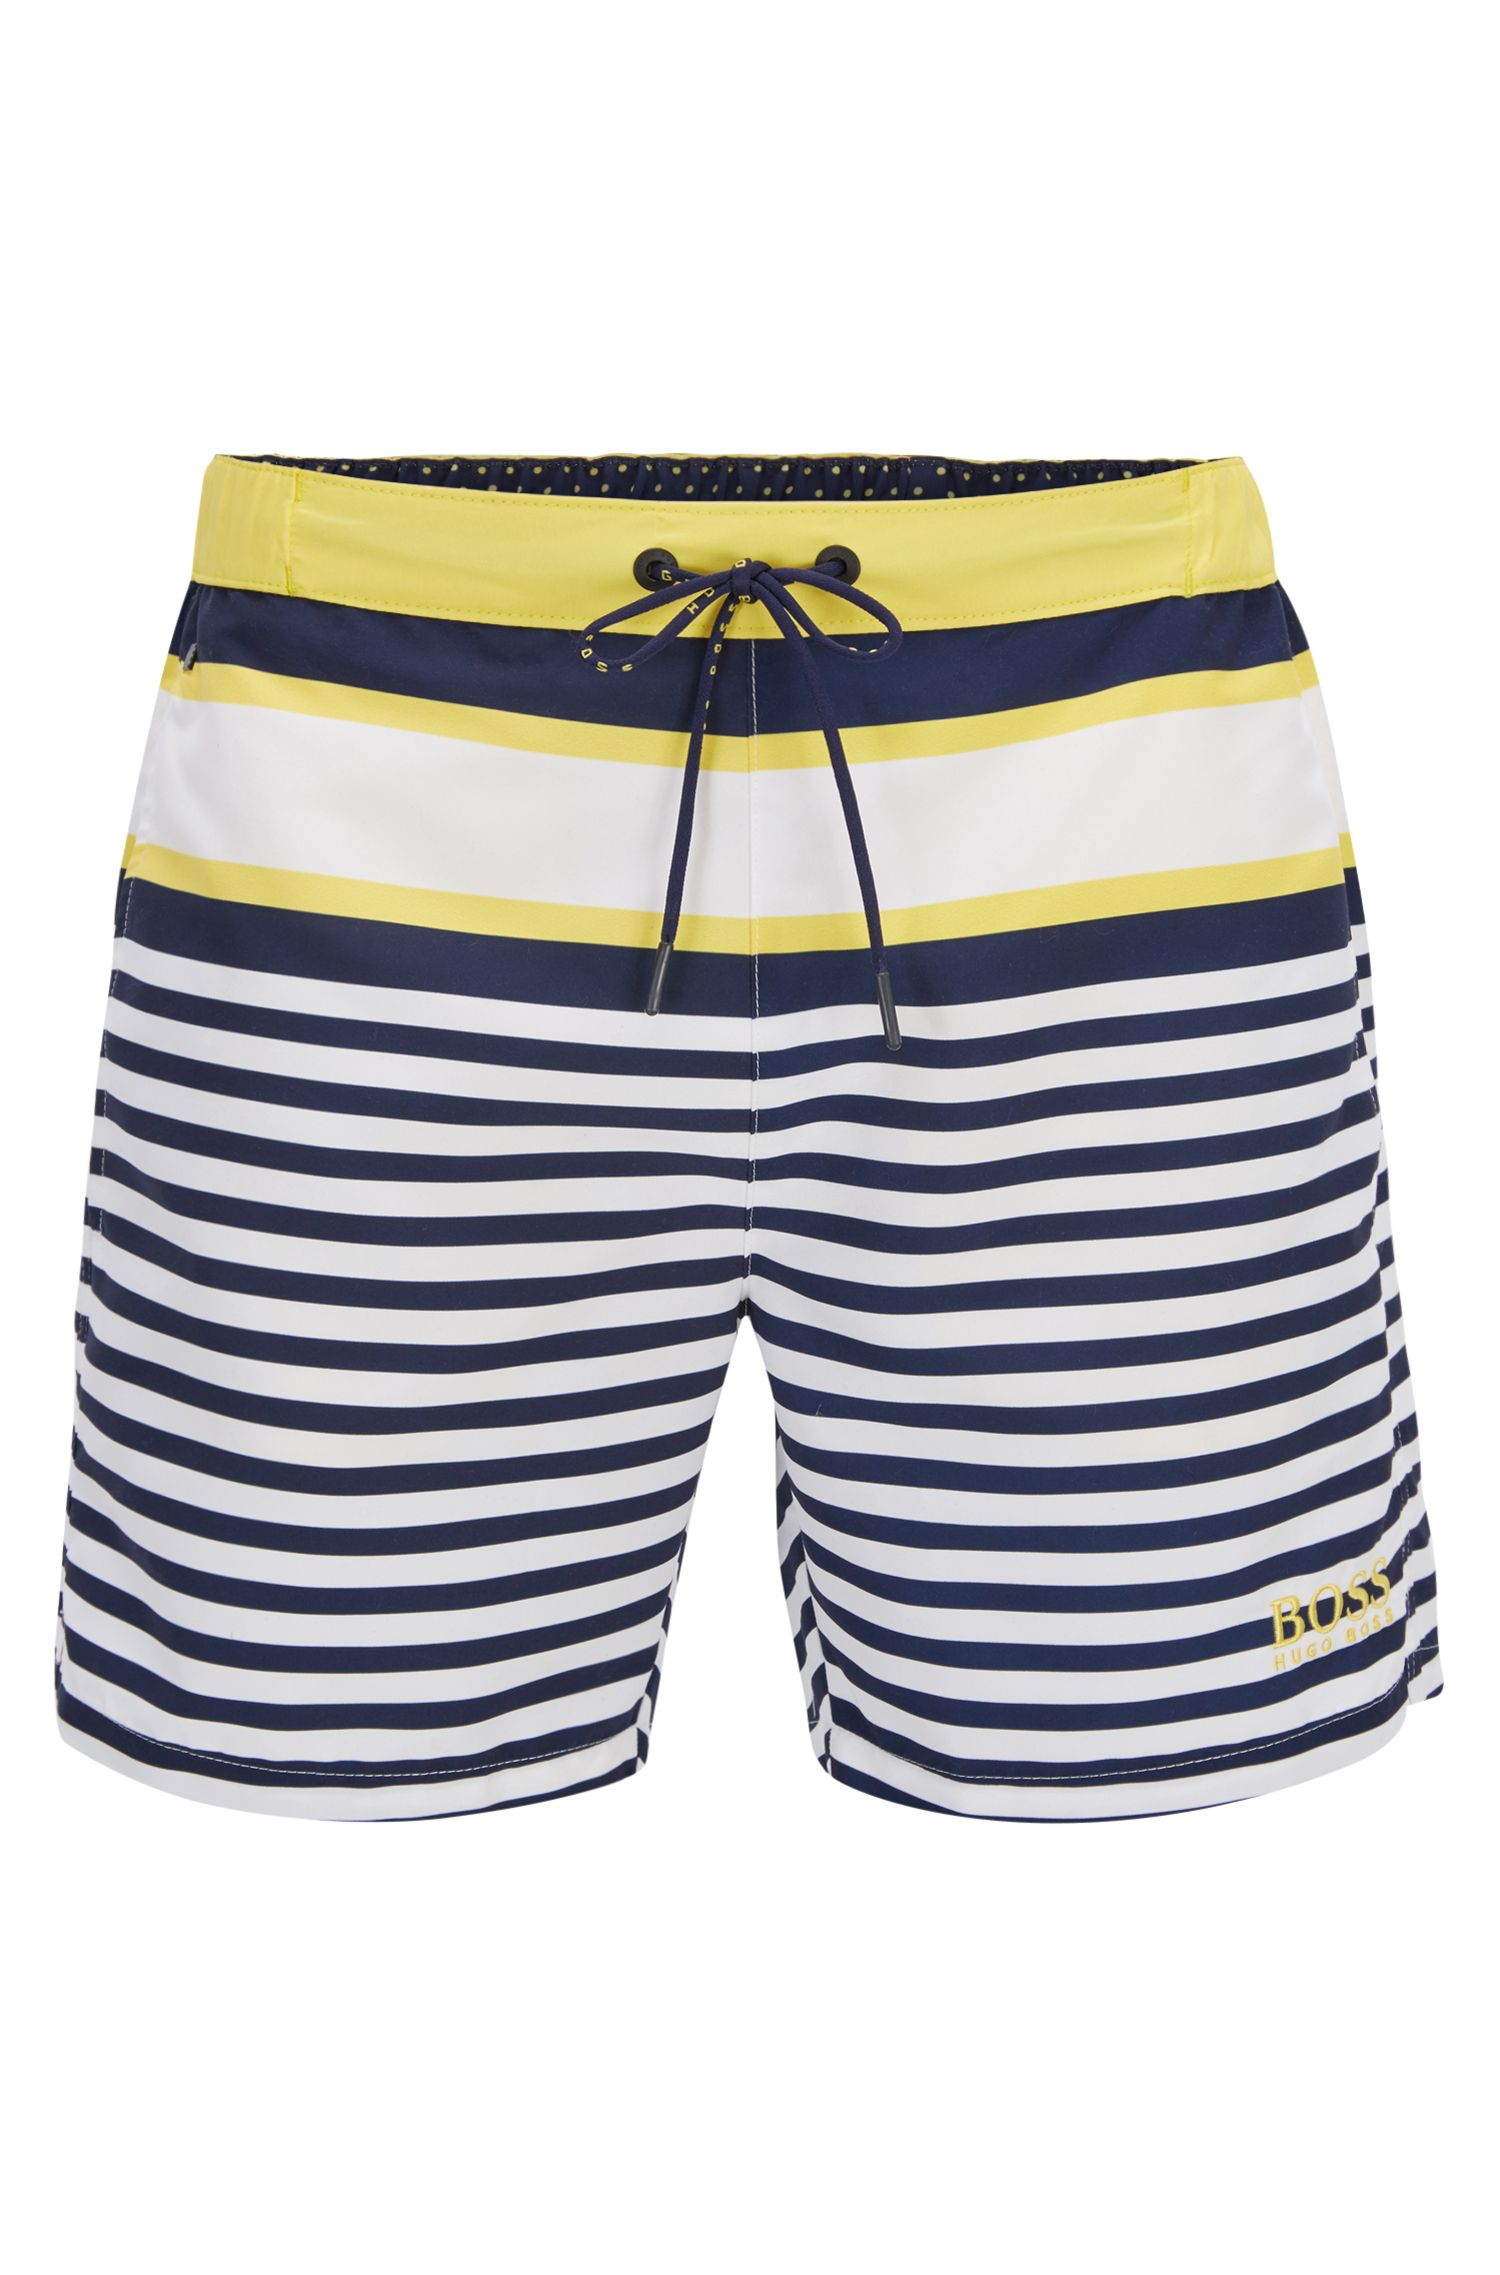 Striped Quick Dry Swim Trunk | Bannerfish